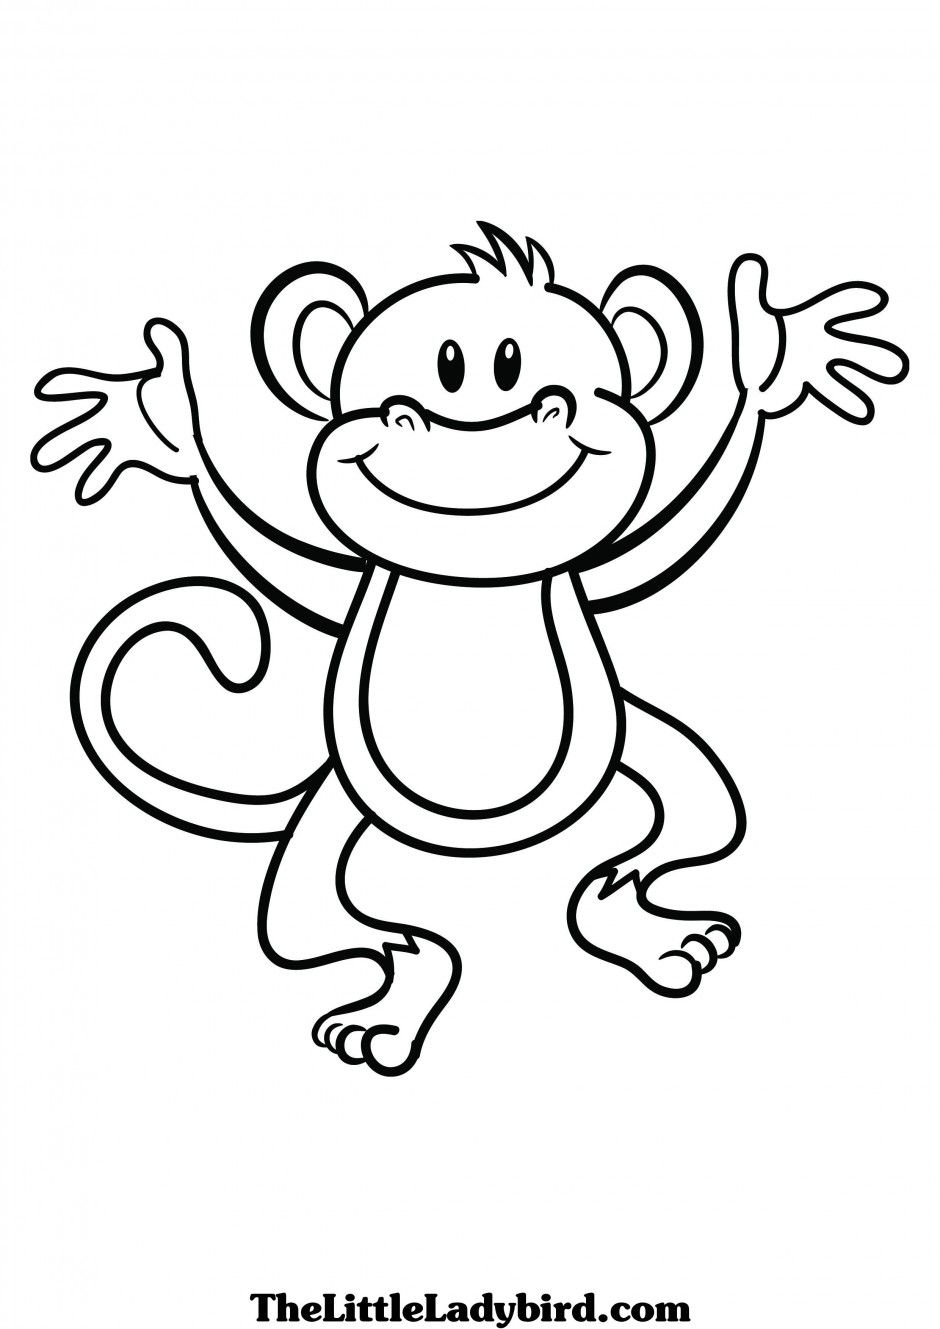 Monkey george of the jungle clipart black and white picture free Pin by Angie Lacks on Zoo Gifs   Monkey coloring pages ... picture free